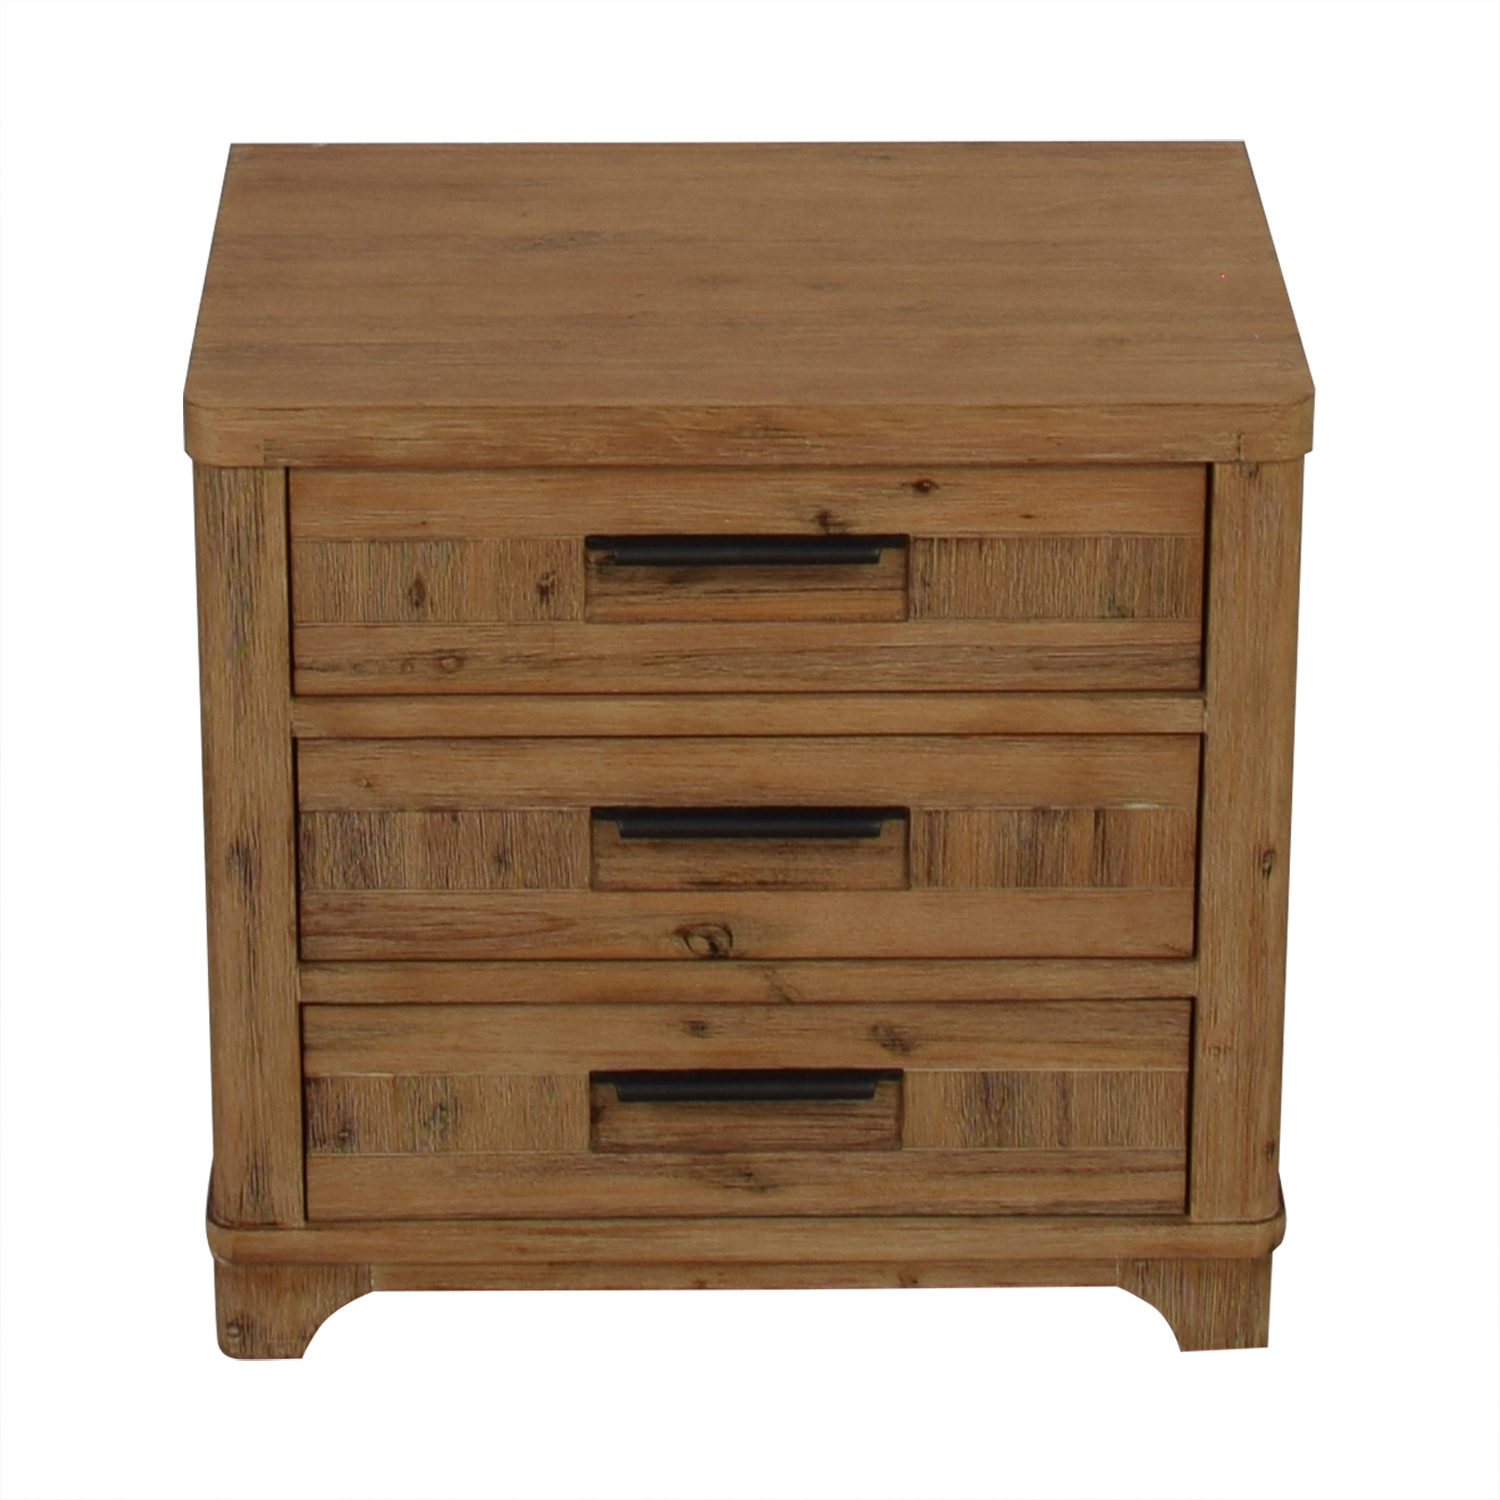 Casana Casana Rustic Three Drawer Nightstand coupon